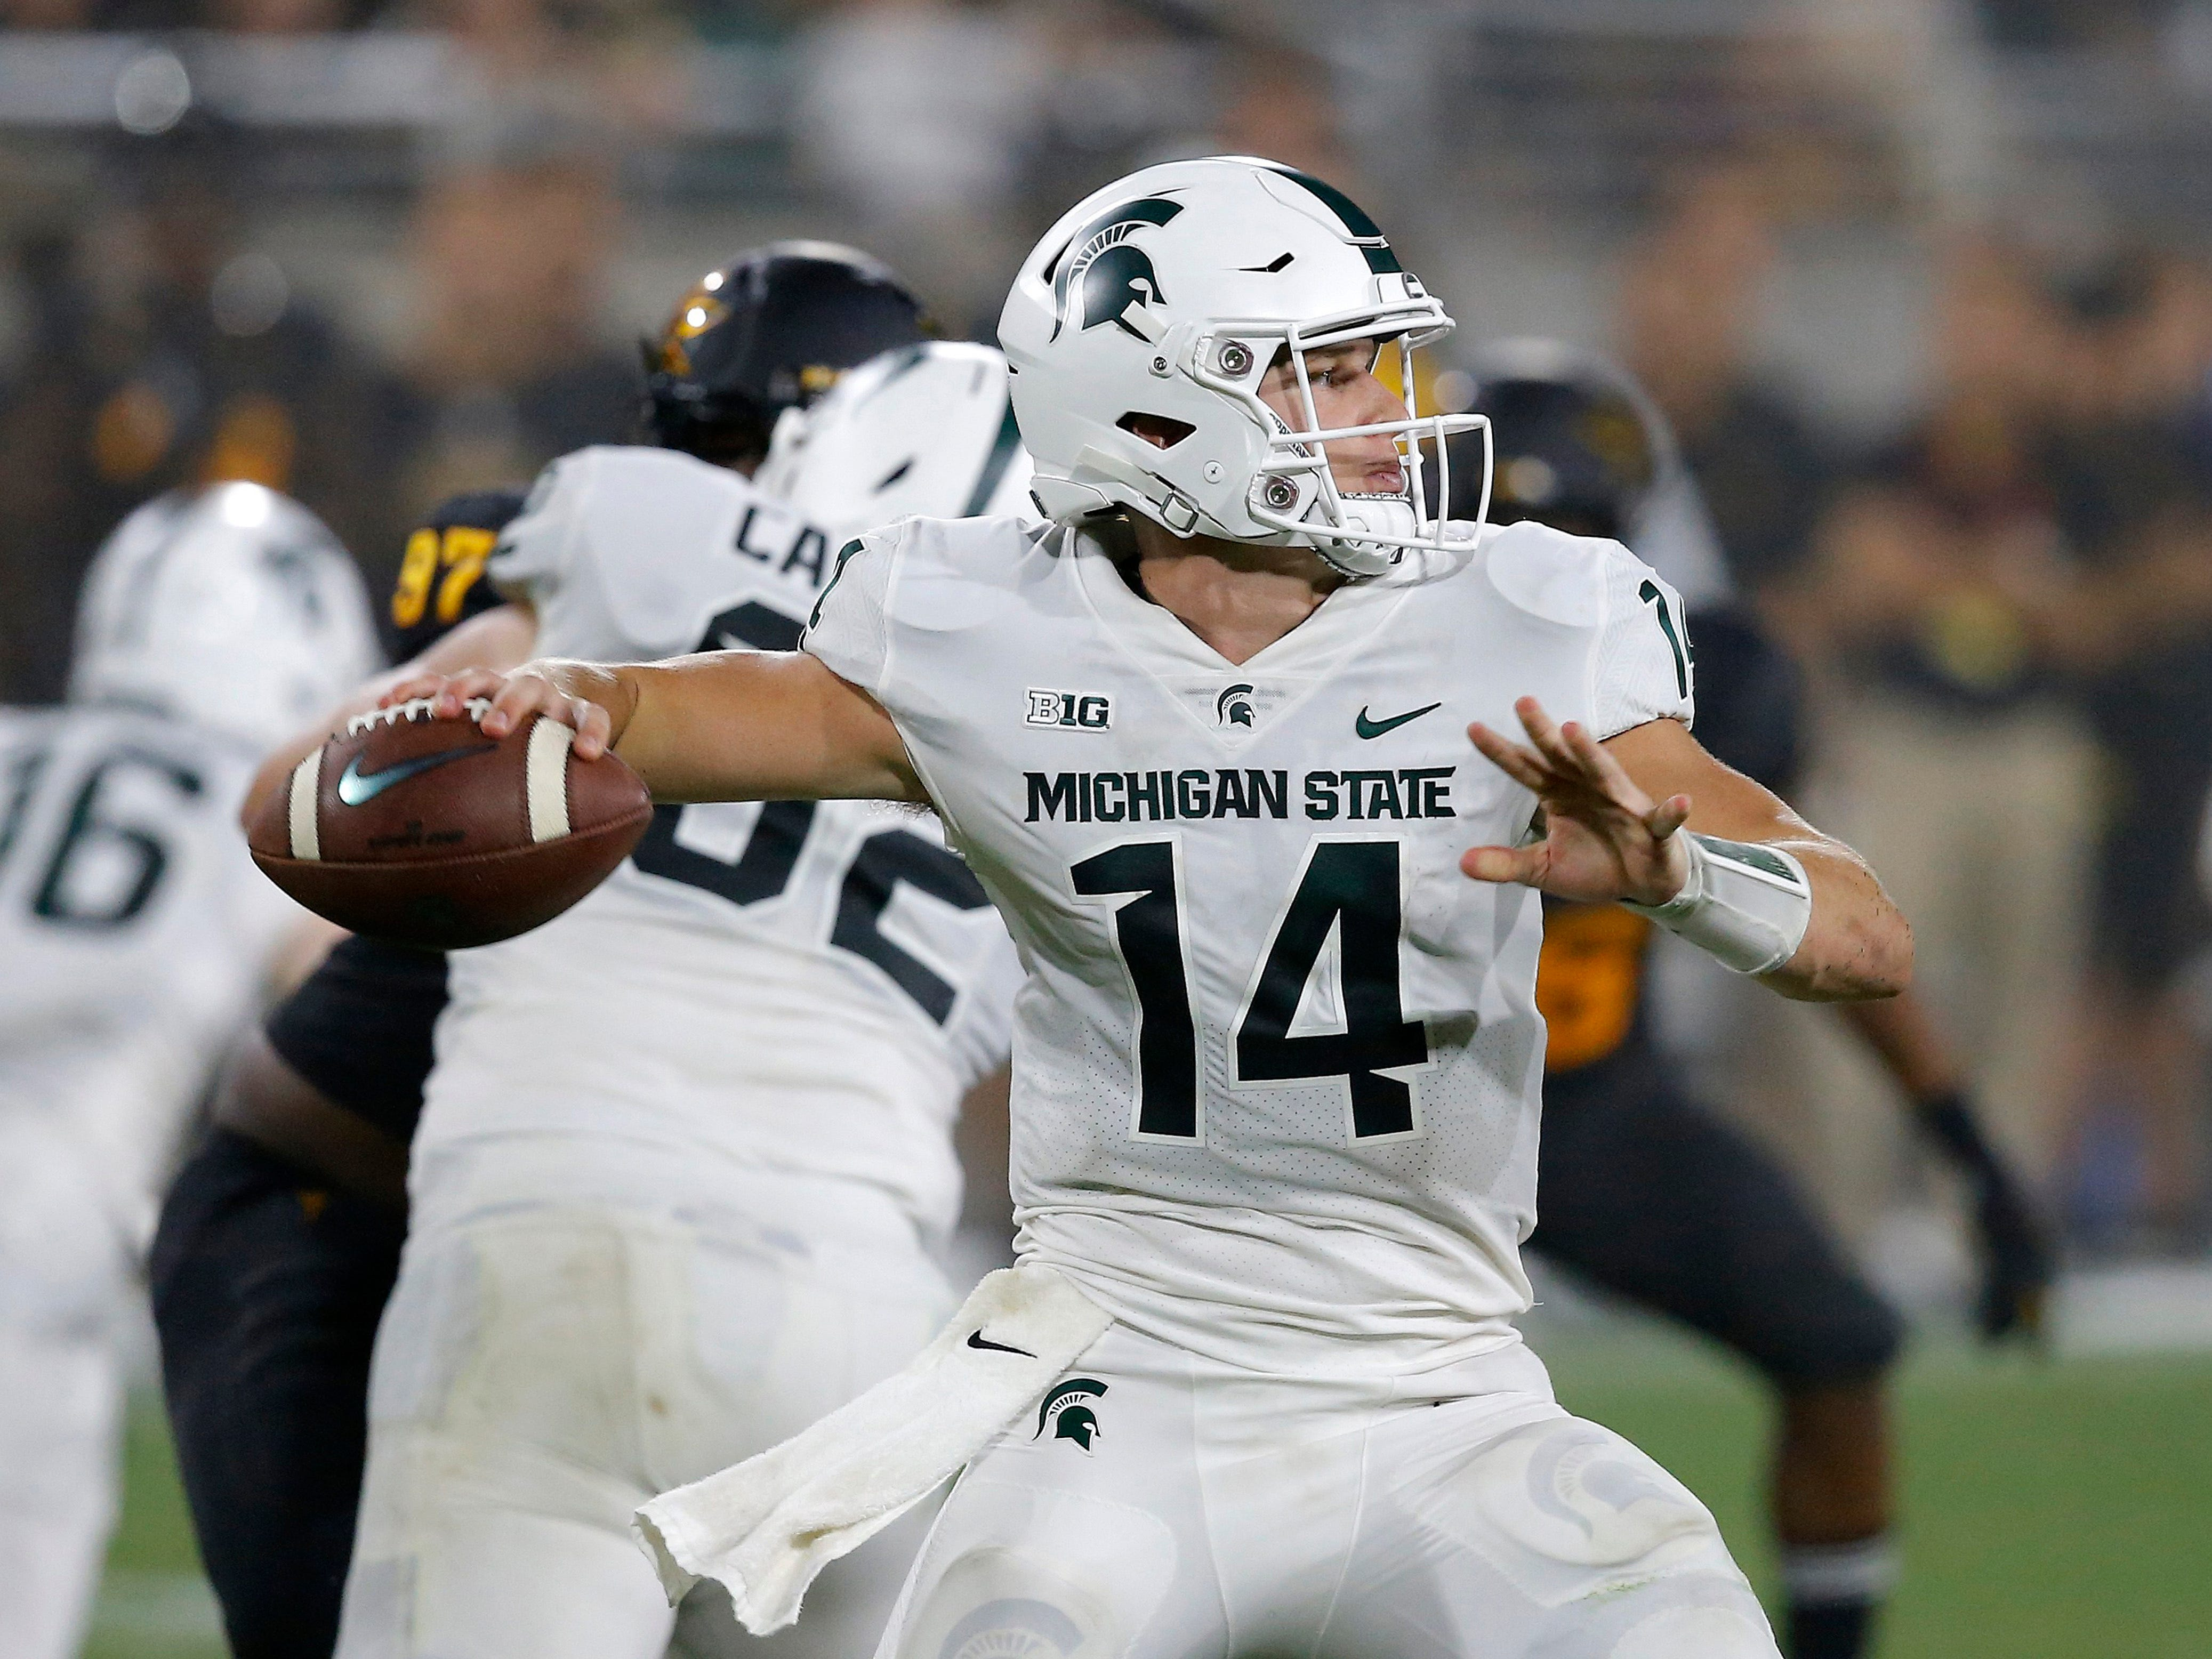 Michigan State quarterback Brian Lewerke throws a pass against Arizona State during the second half of an NCAA college football game Saturday, Sept. 8, 2018, in Tempe, Ariz. Arizona State defeated Michigan State 16-13.